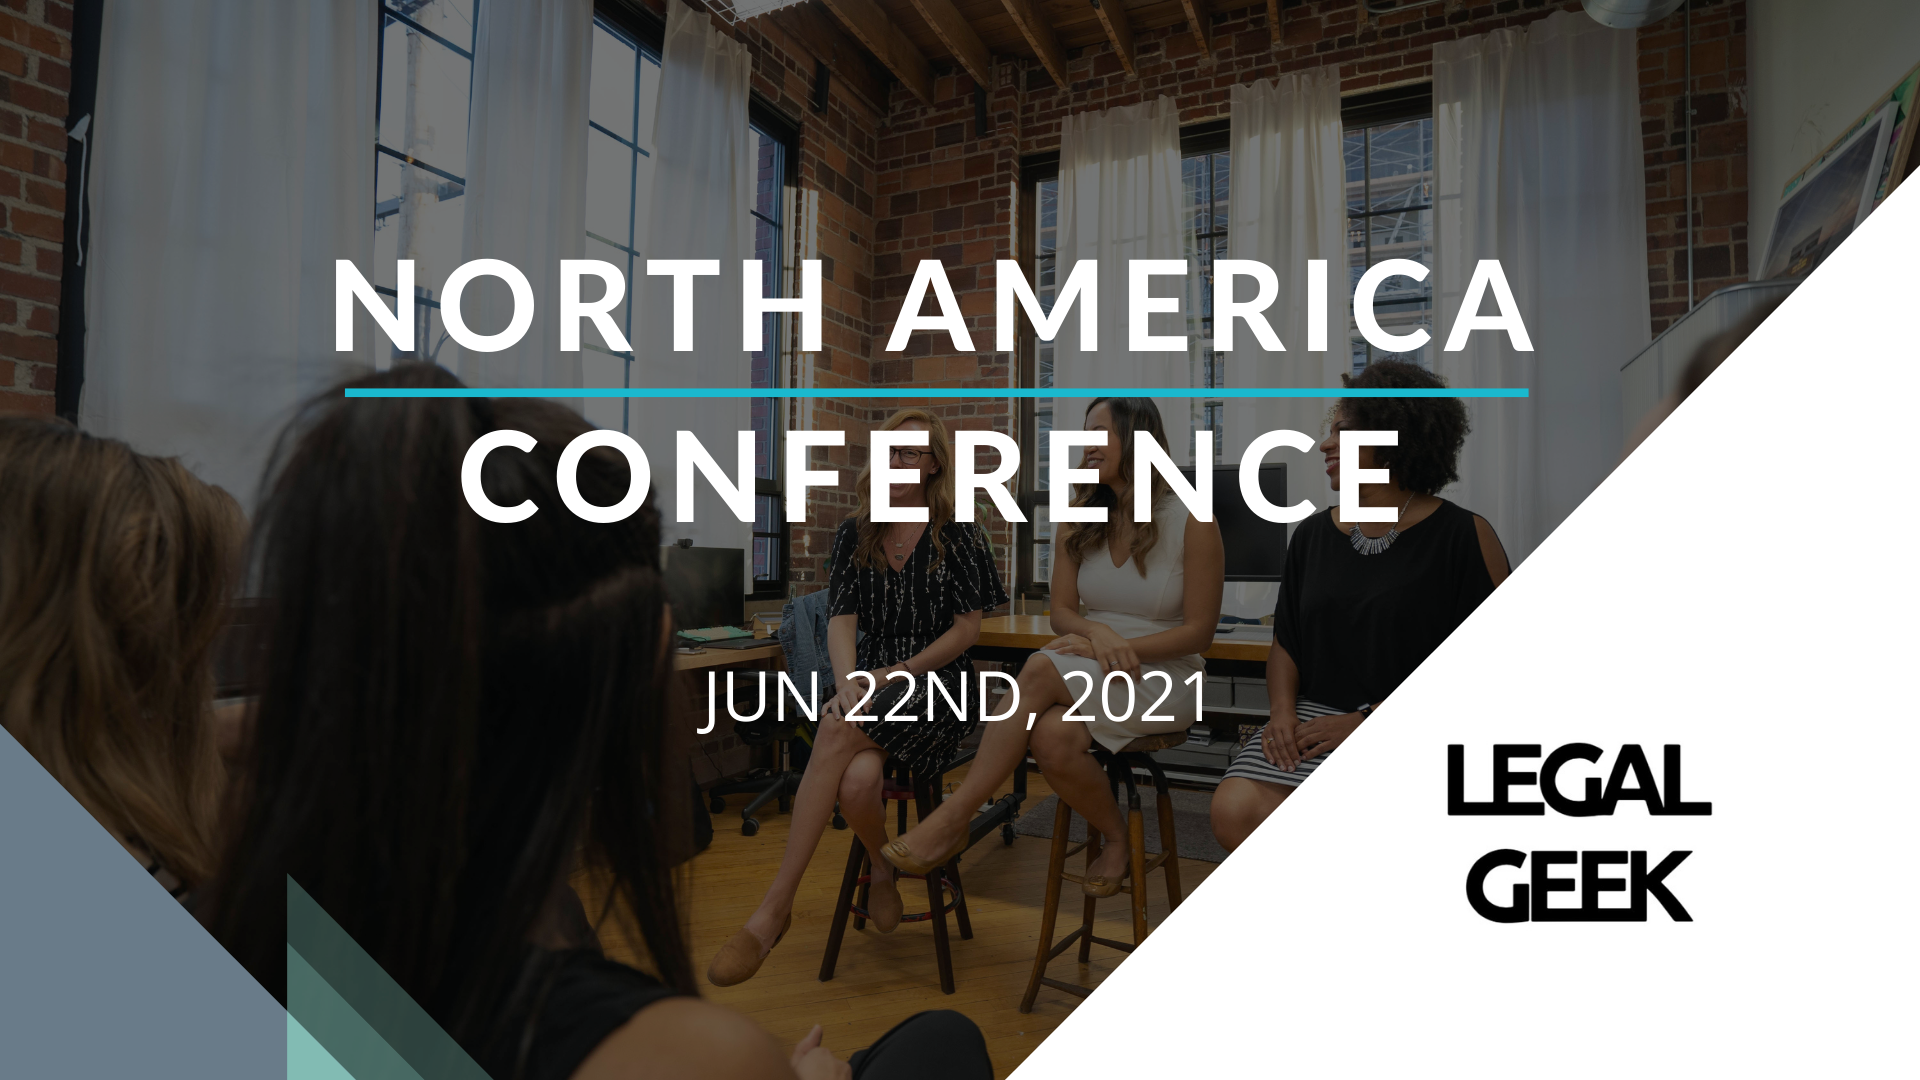 Legal Geek: North America Conference